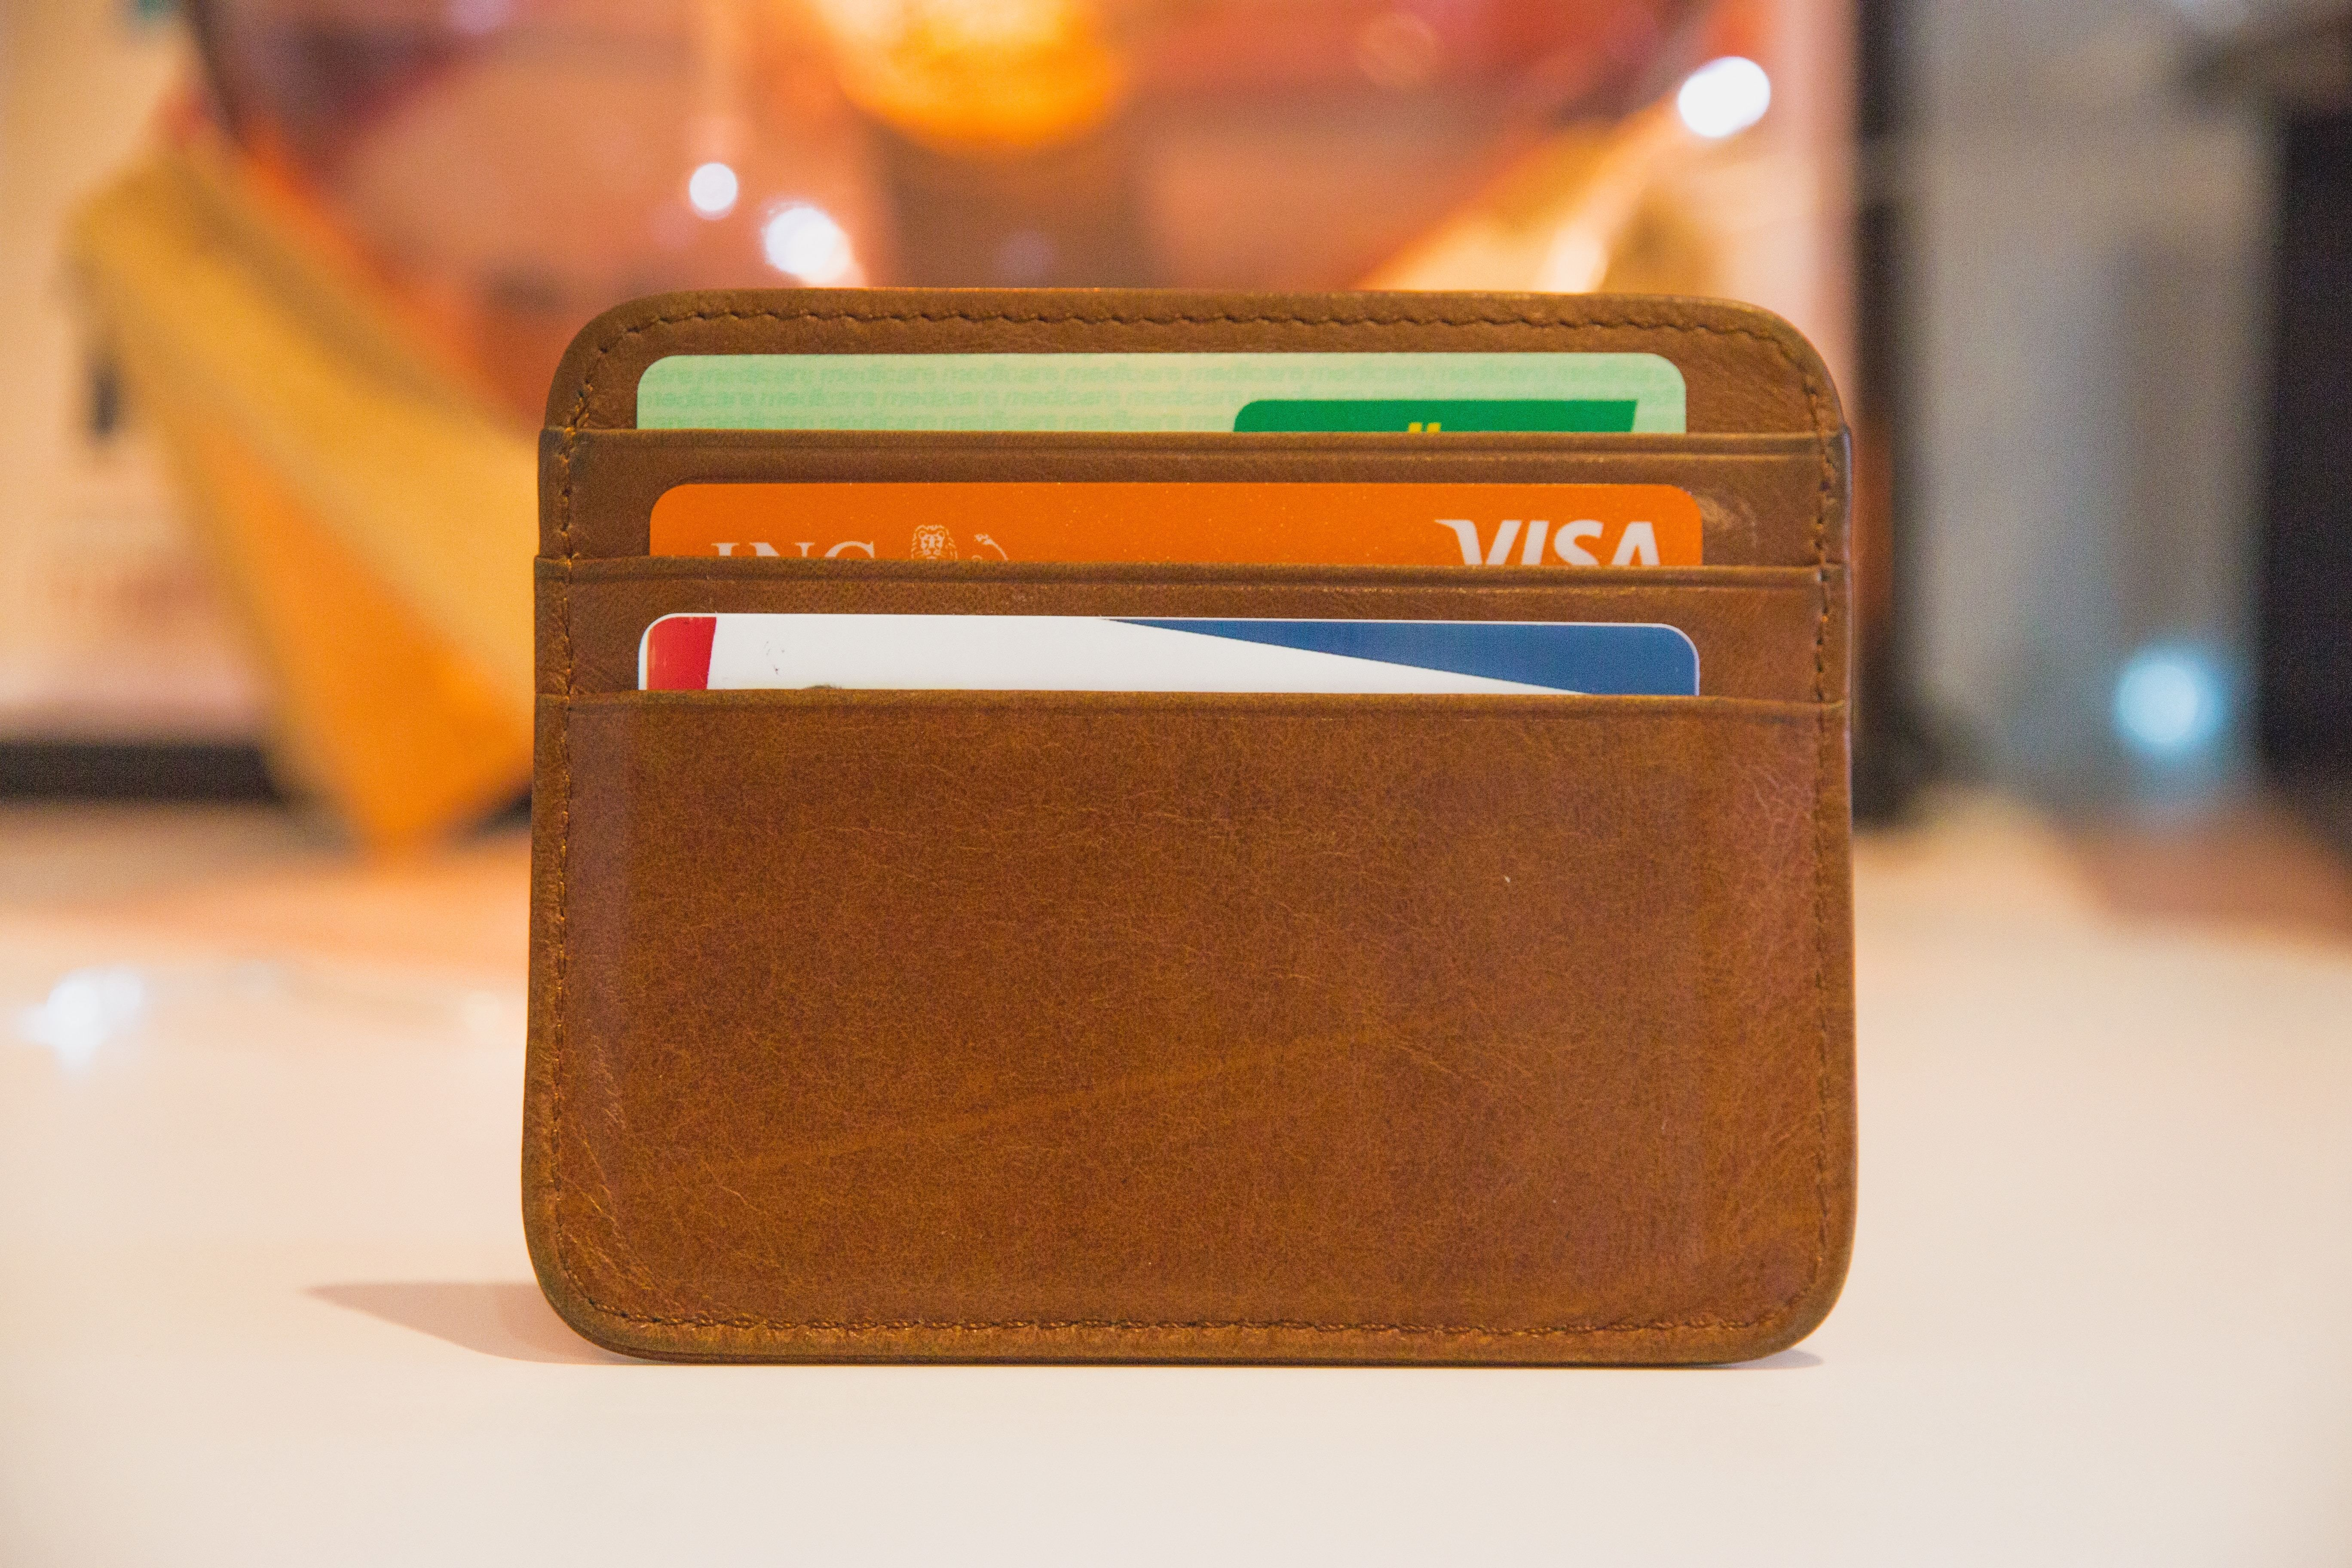 Photo of a credit card wallet with three credit cards.